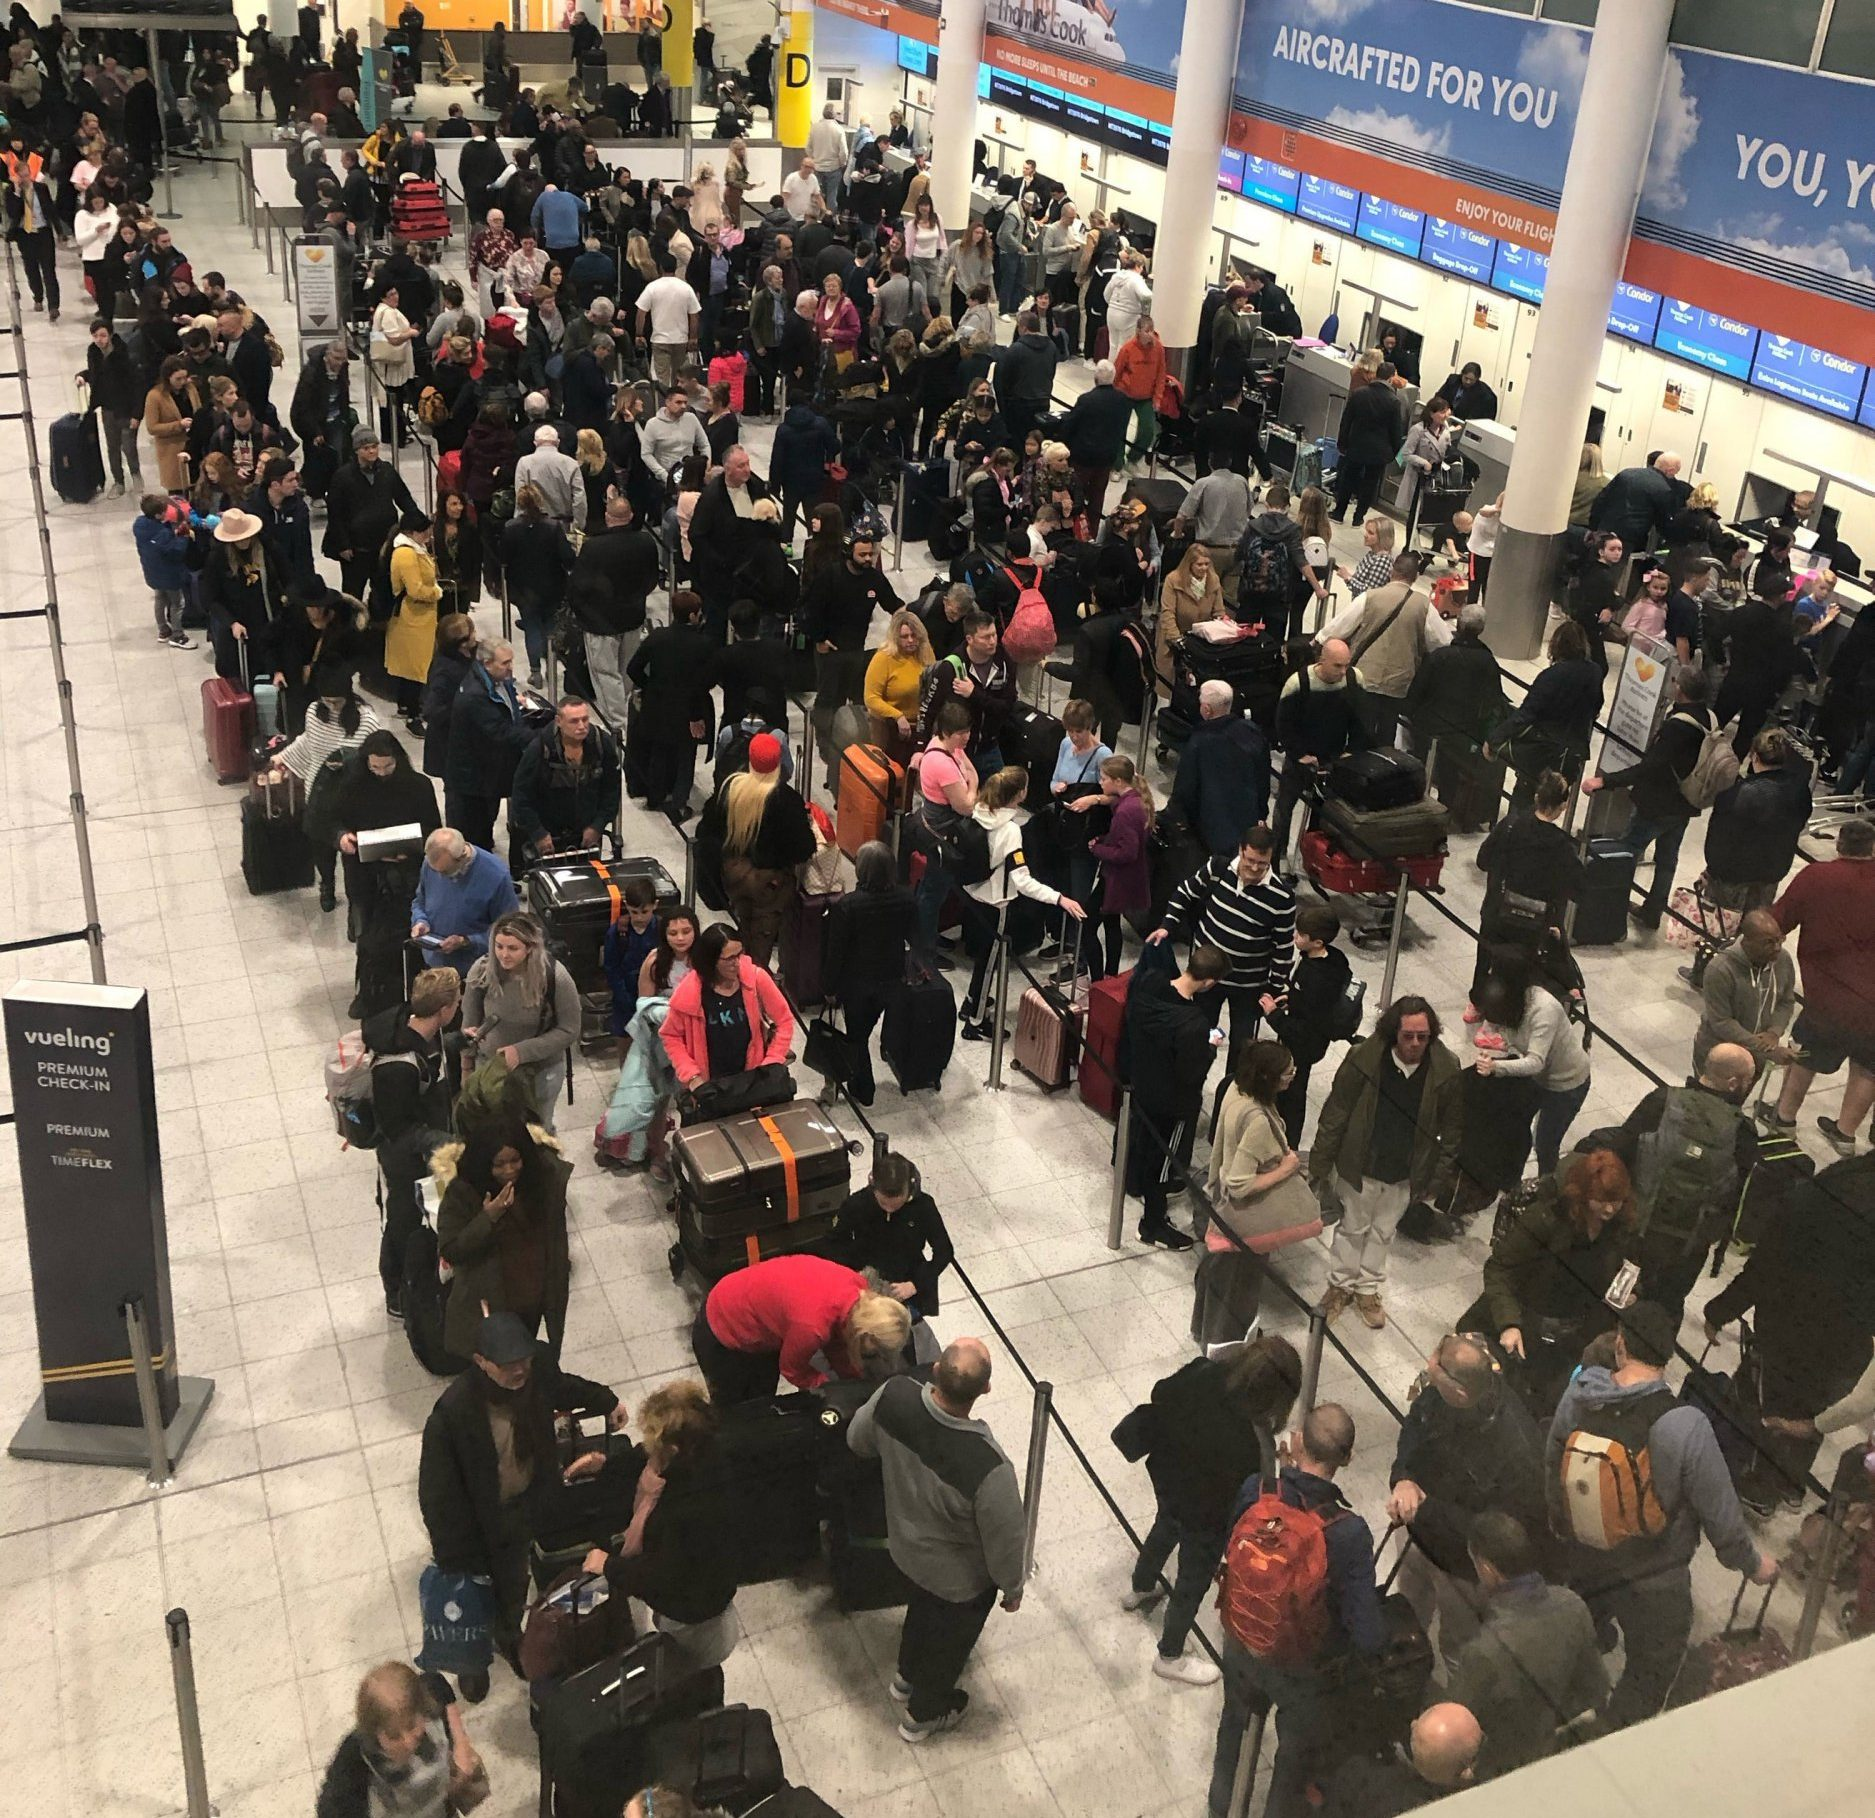 Queues of passengers in the check in area at Gatwick Airport this morning, as the airport remains closed after drones were spotted over the airfield last night and this morning. PRESS ASSOCIATION Photo. Picture date: Thursday December 20, 2018. See PA story AIR Gatwick. Photo credit should read: Thomas Hornall/PA Wire